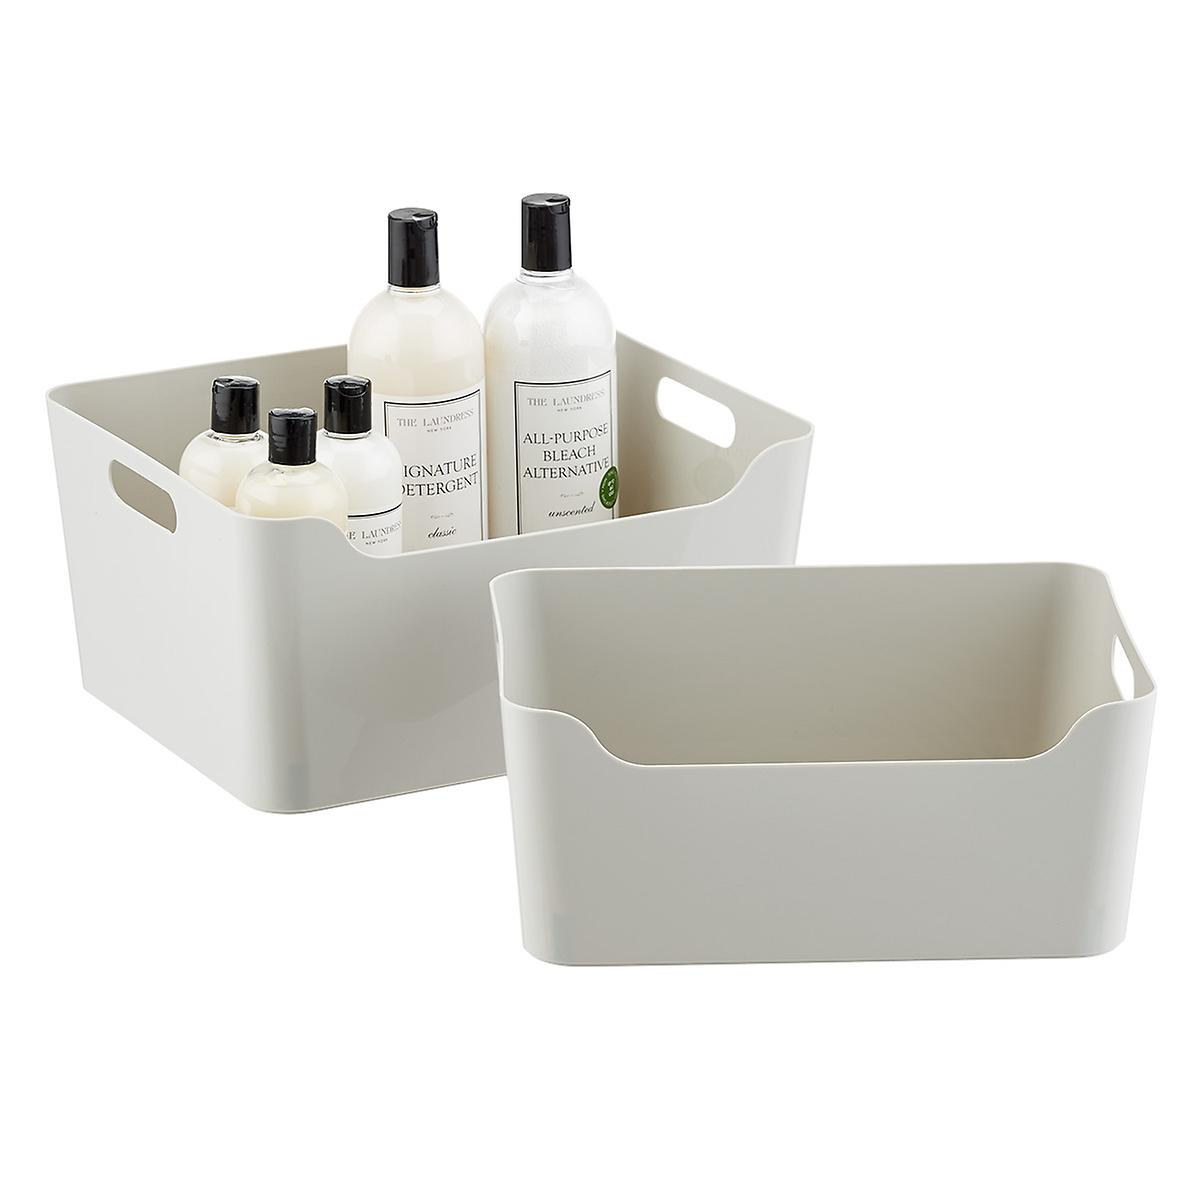 Light Grey Plastic Storage Bins with Handles